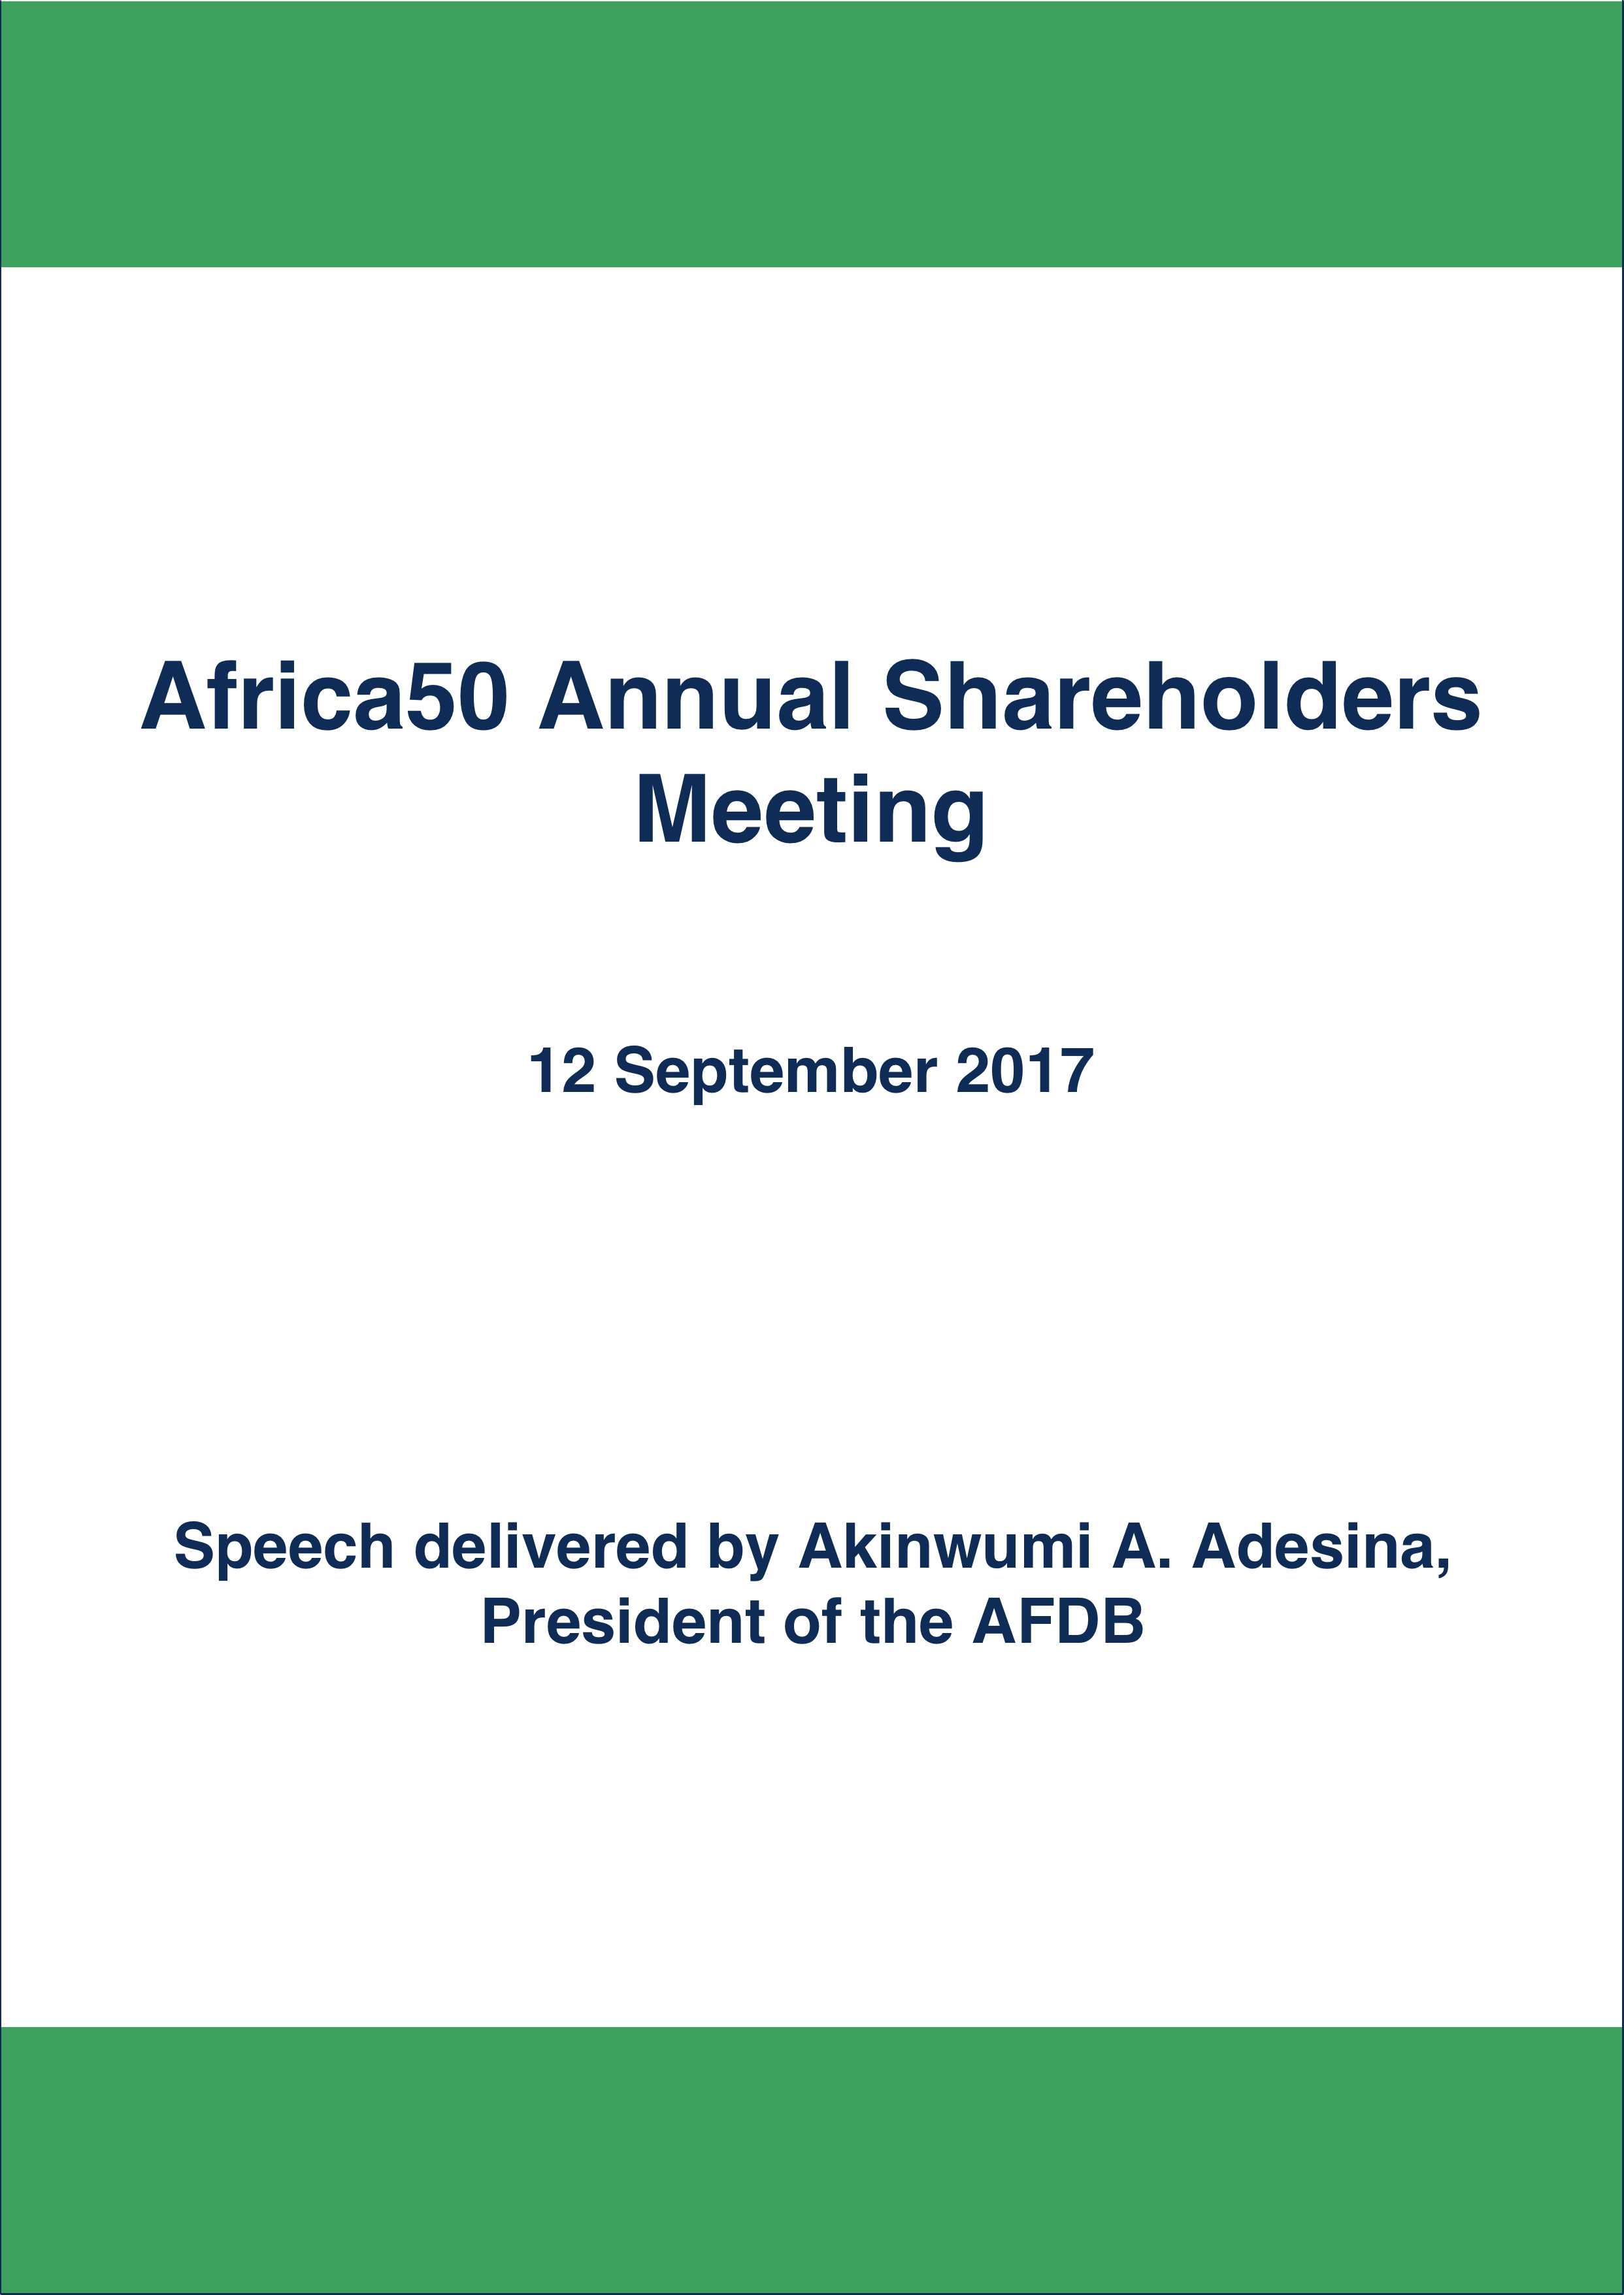 Speech Delivered by Akinwumi A. Adesina, President of the AFDB, at the Africa50 Annual Shareholders Meeting